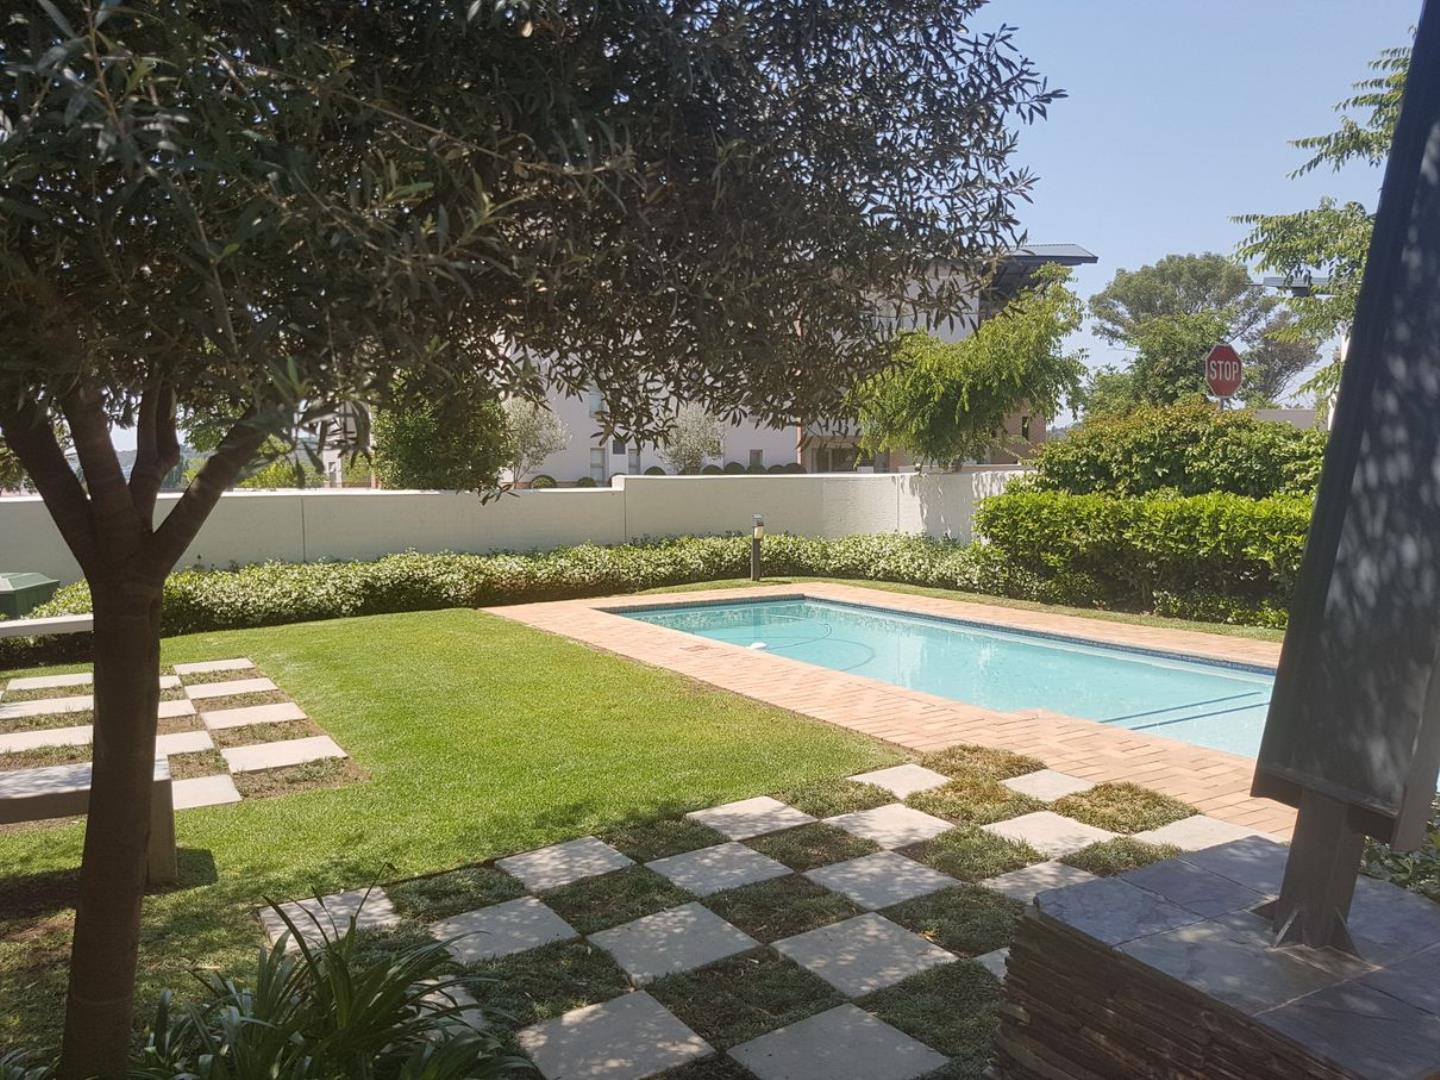 2 Bedroom Apartment for Sale in Lonehill, Sandton - Gauteng